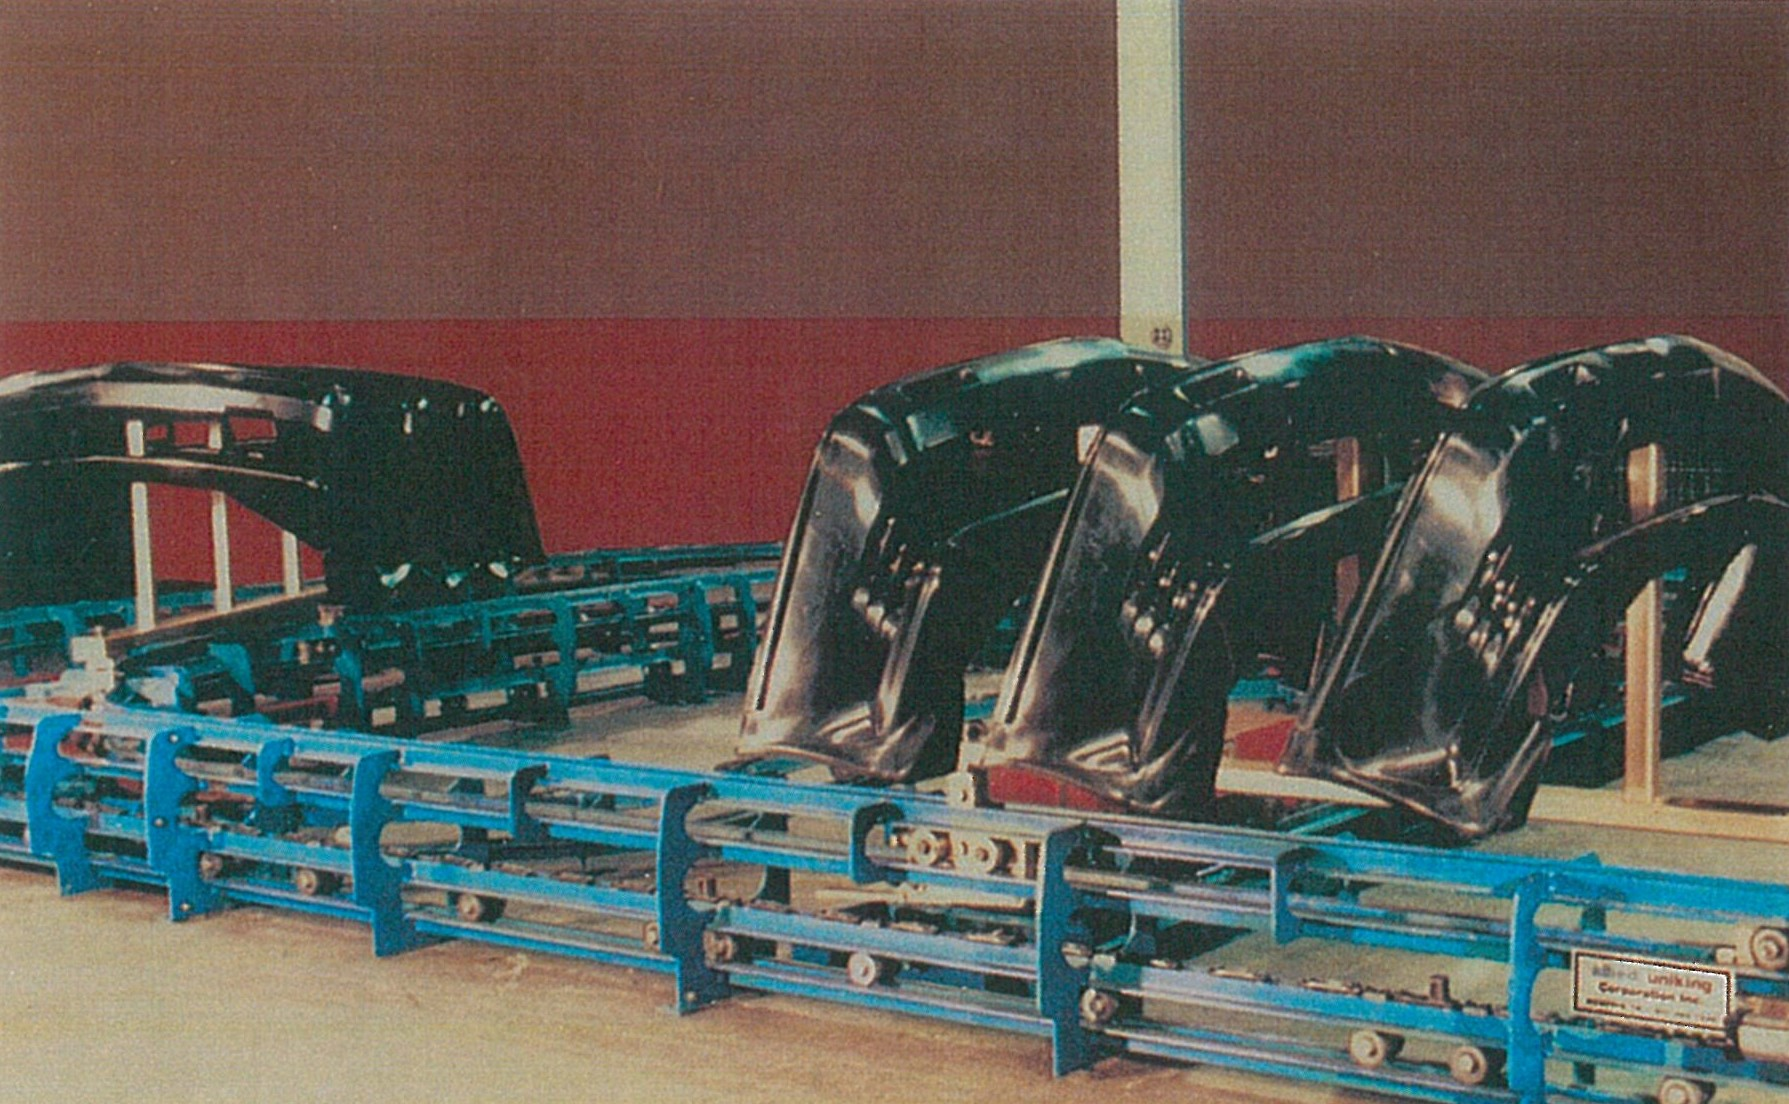 Old Inverted Power & Free Conveyor